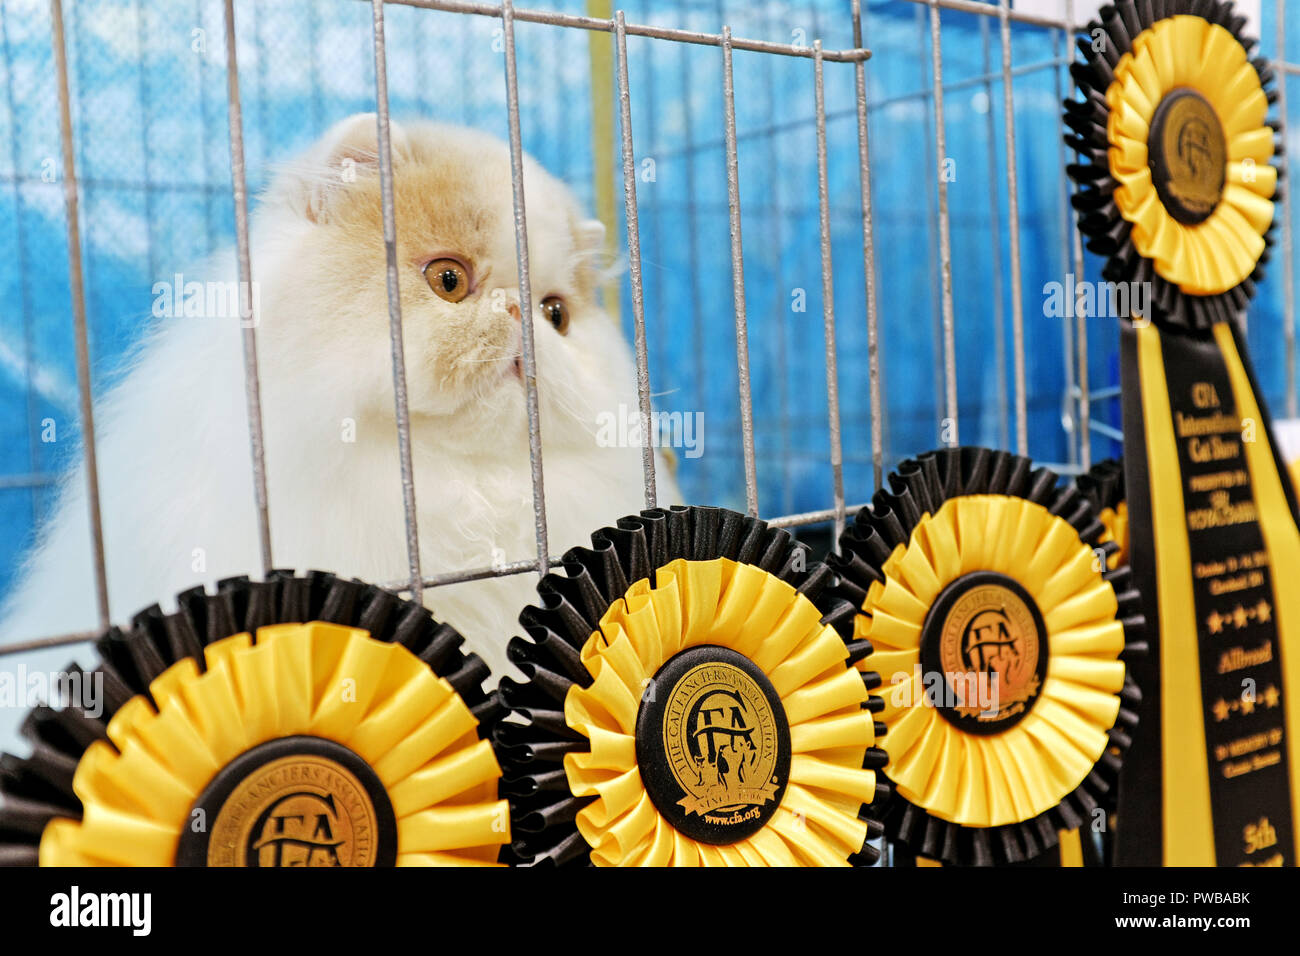 Cleveland, Ohio, USA, 14th Oct, 2018.  A pedigreed Persian cat watches out her benching cage at the 2018 CFA International Cat Show where she is surrounded by show winning ribbons.  The largest show of its type in the US, the judged pedigreed cat show at the IX Center in Cleveland, Ohio includes competitions amongst approximately 1,000 cats of varying breeds.  Credit: Mark Kanning/Alamy Live News. - Stock Image